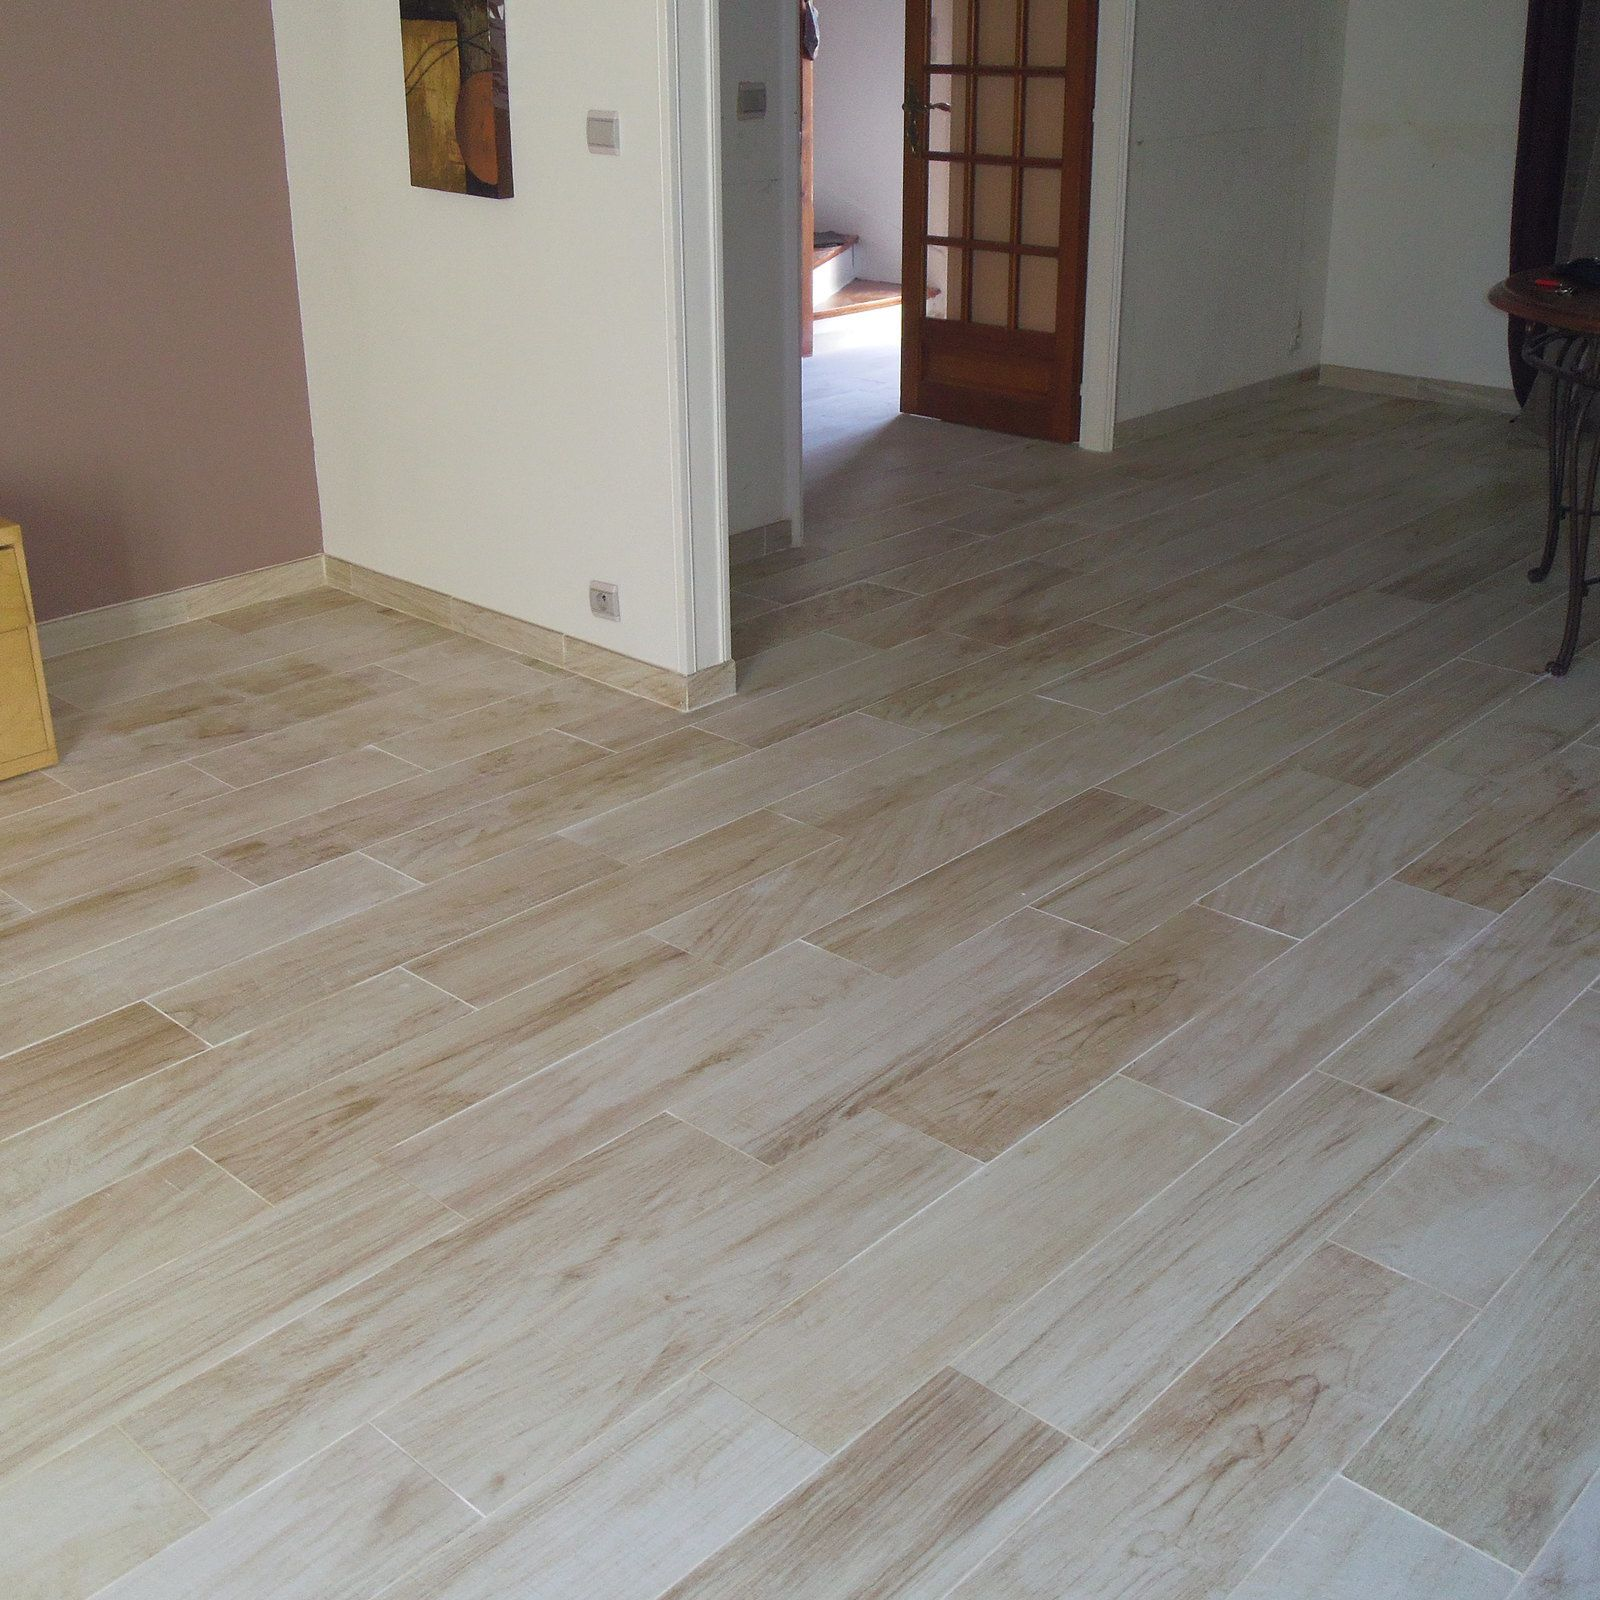 Pose d 39 un carrelage imitation parquet r novation en b timent for Pose carrelage imitation parquet sur plancher chauffant